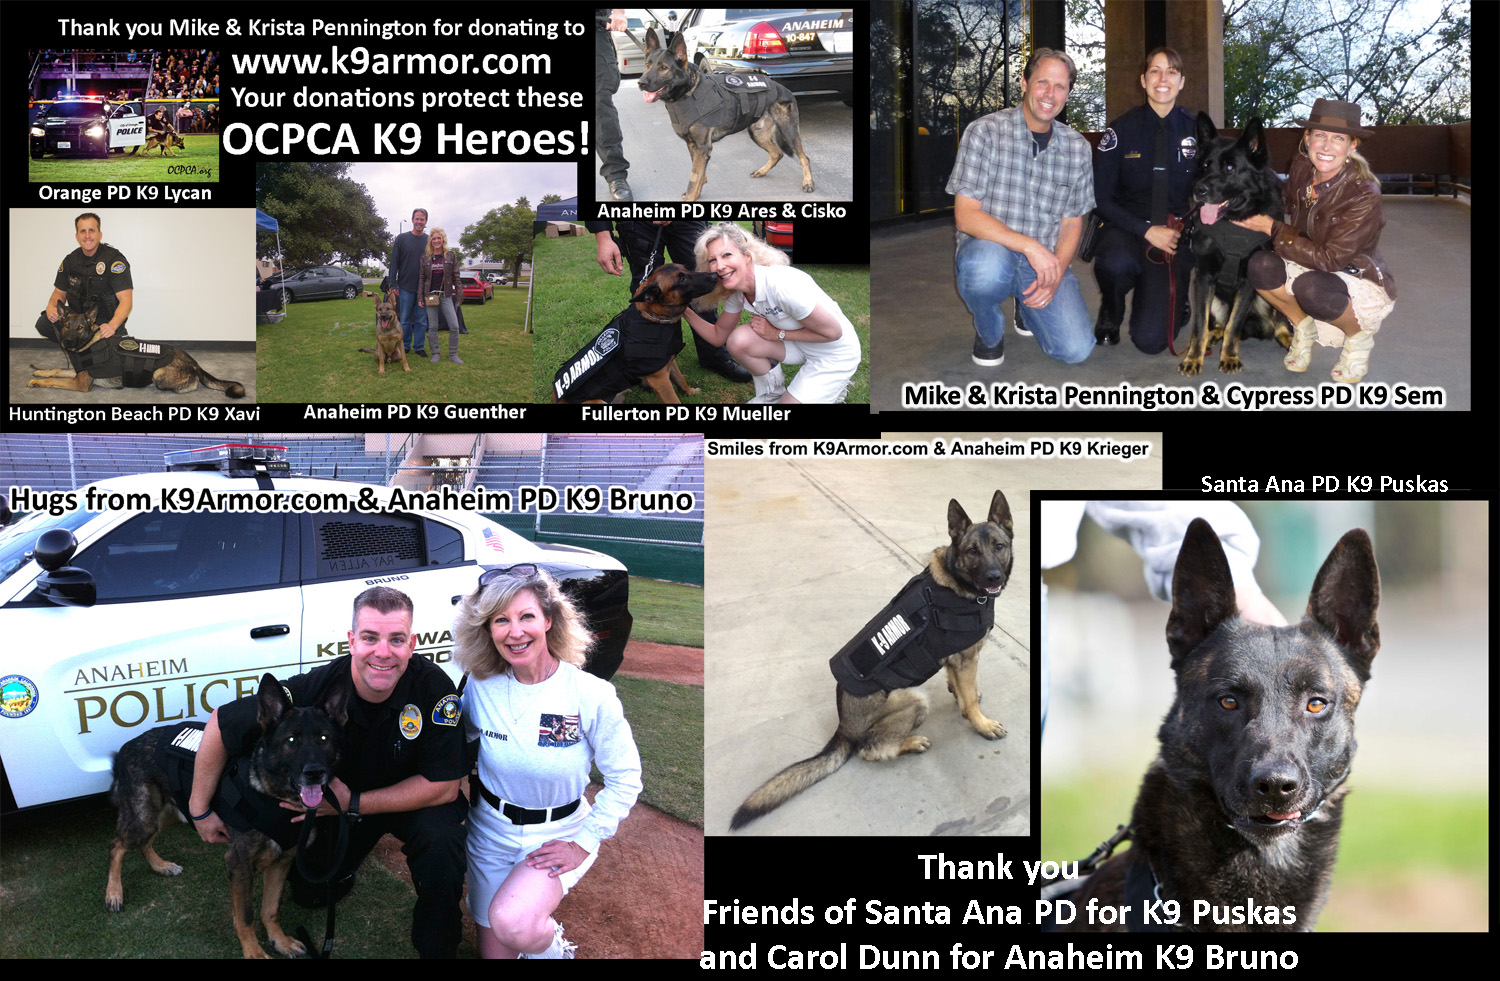 2014 our Angels the Penningtons donated for three bulletproof vests bringing the total to 13 OCPCA K9 Heroes protected with K9 Armor